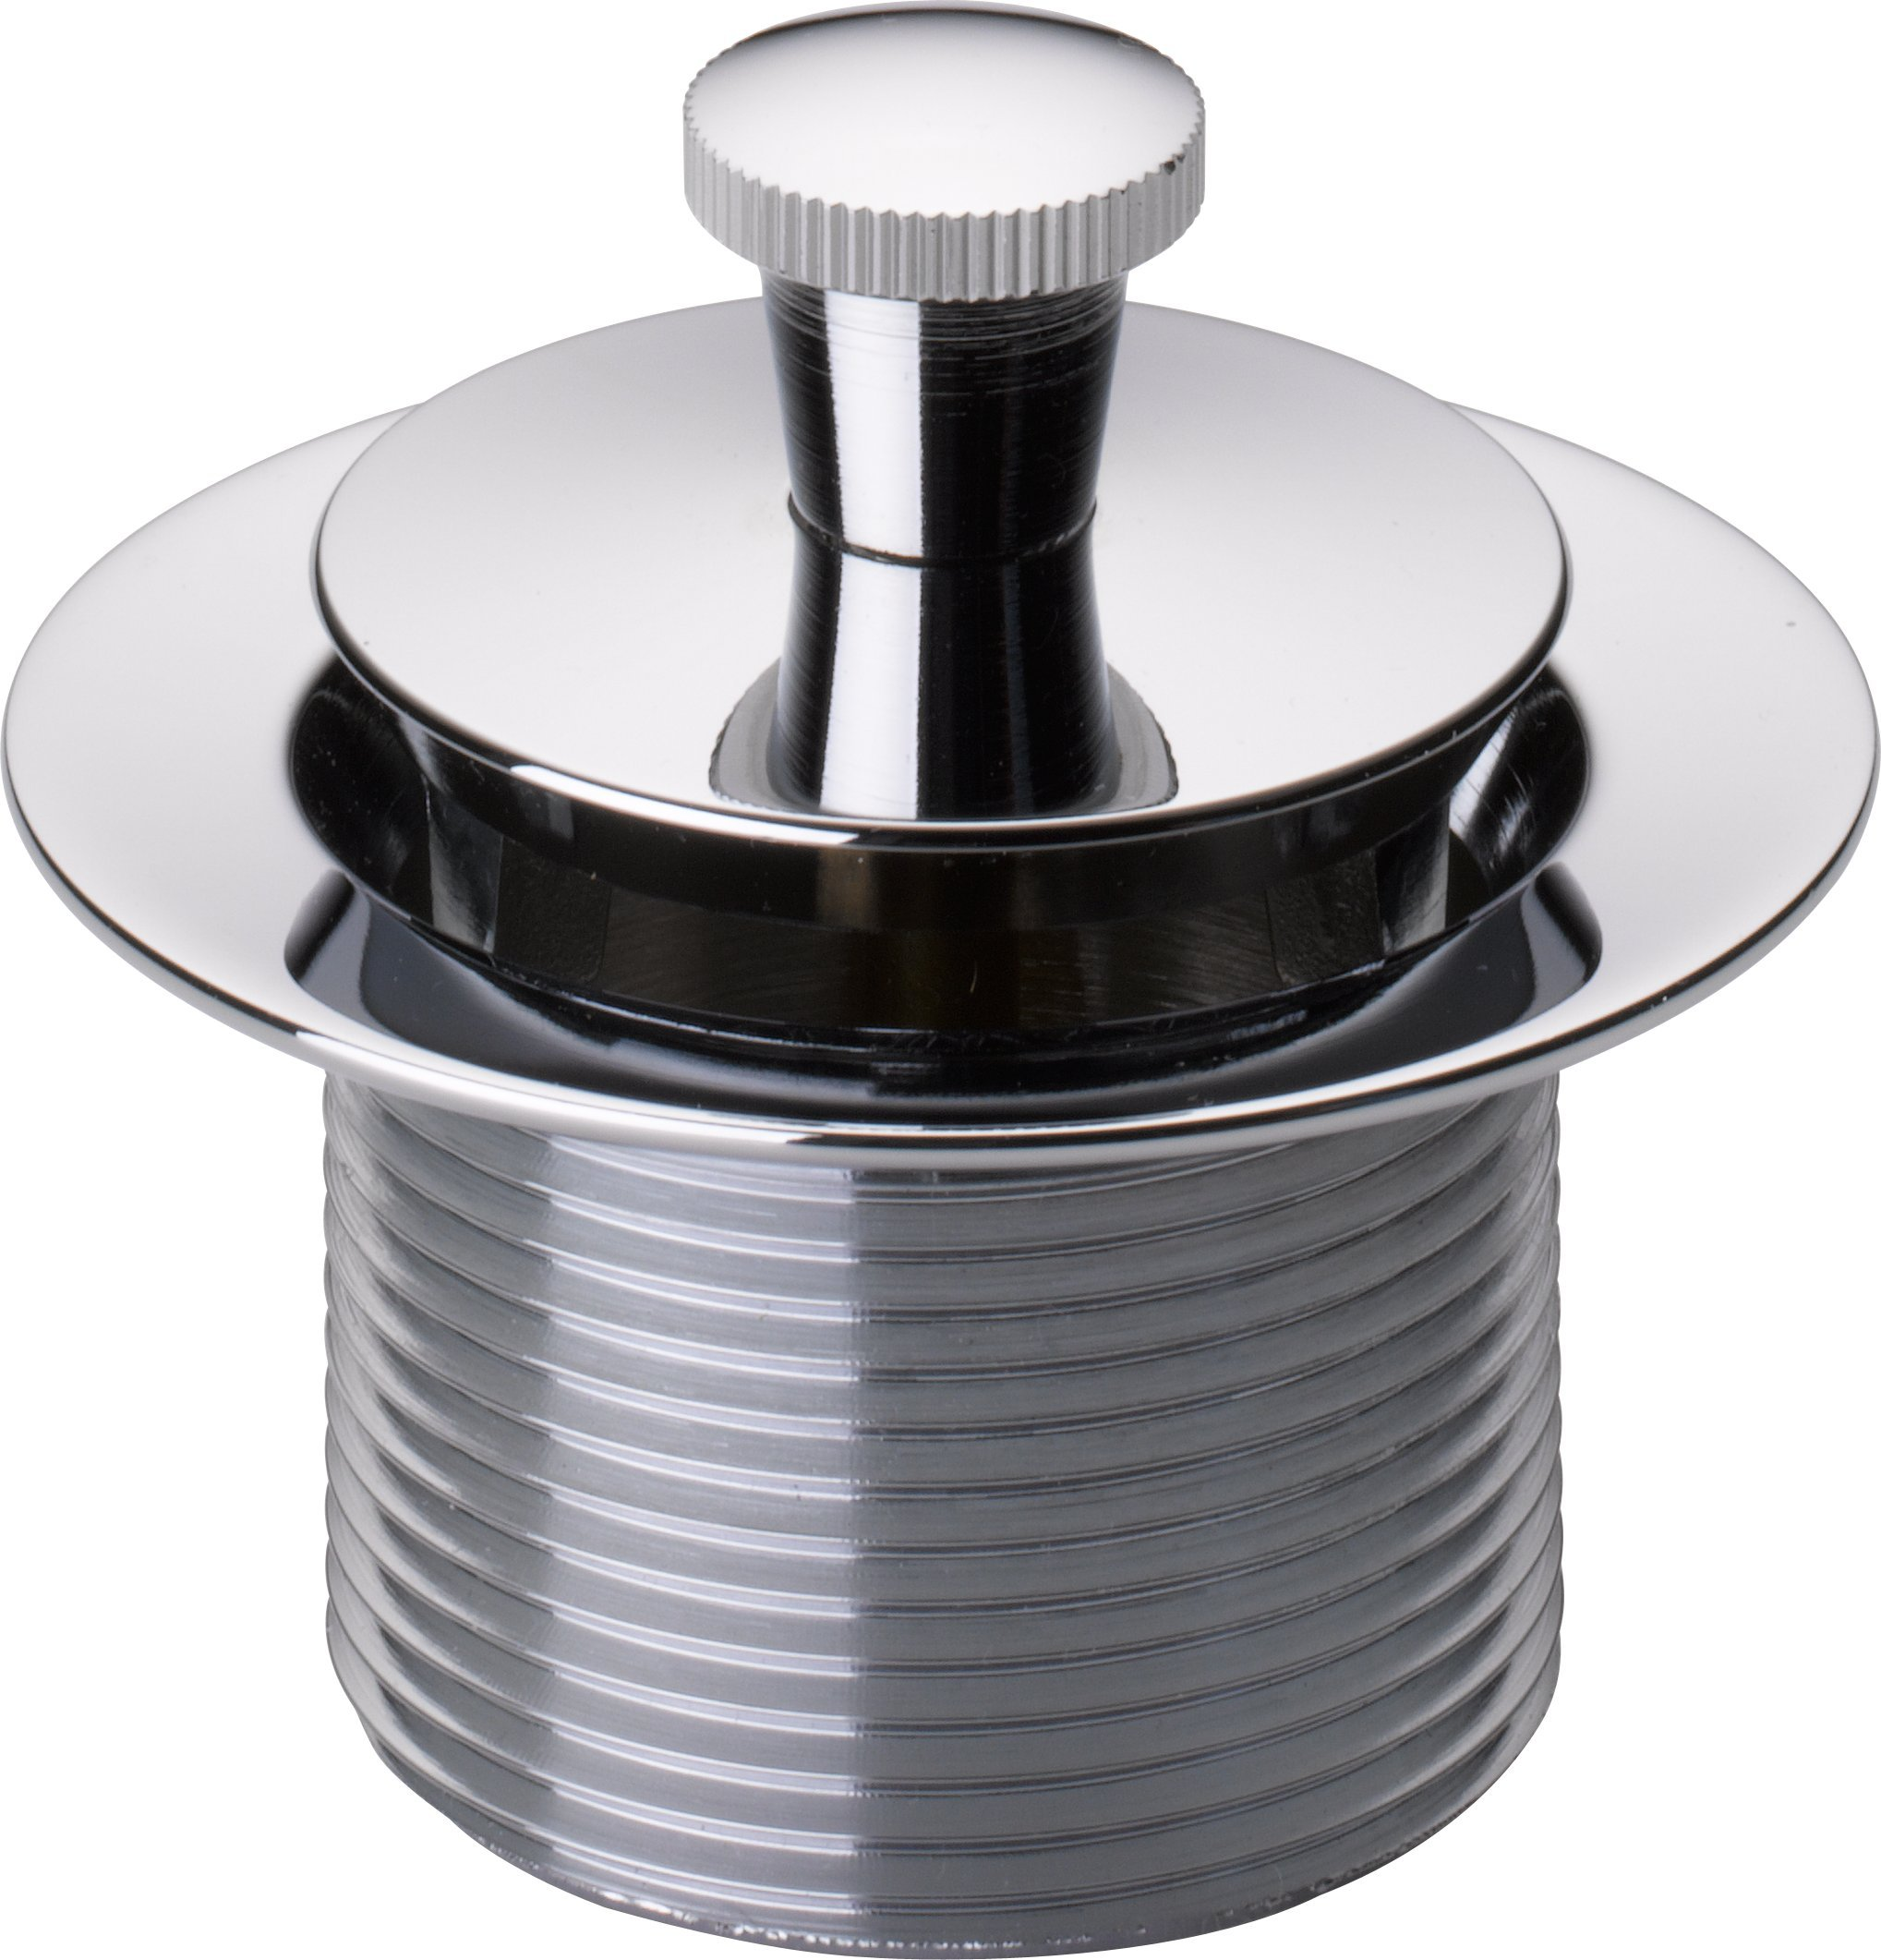 Peerless 76119 Lift and Turn Drain Stopper Bathtub, Chrome by DELTA FAUCET